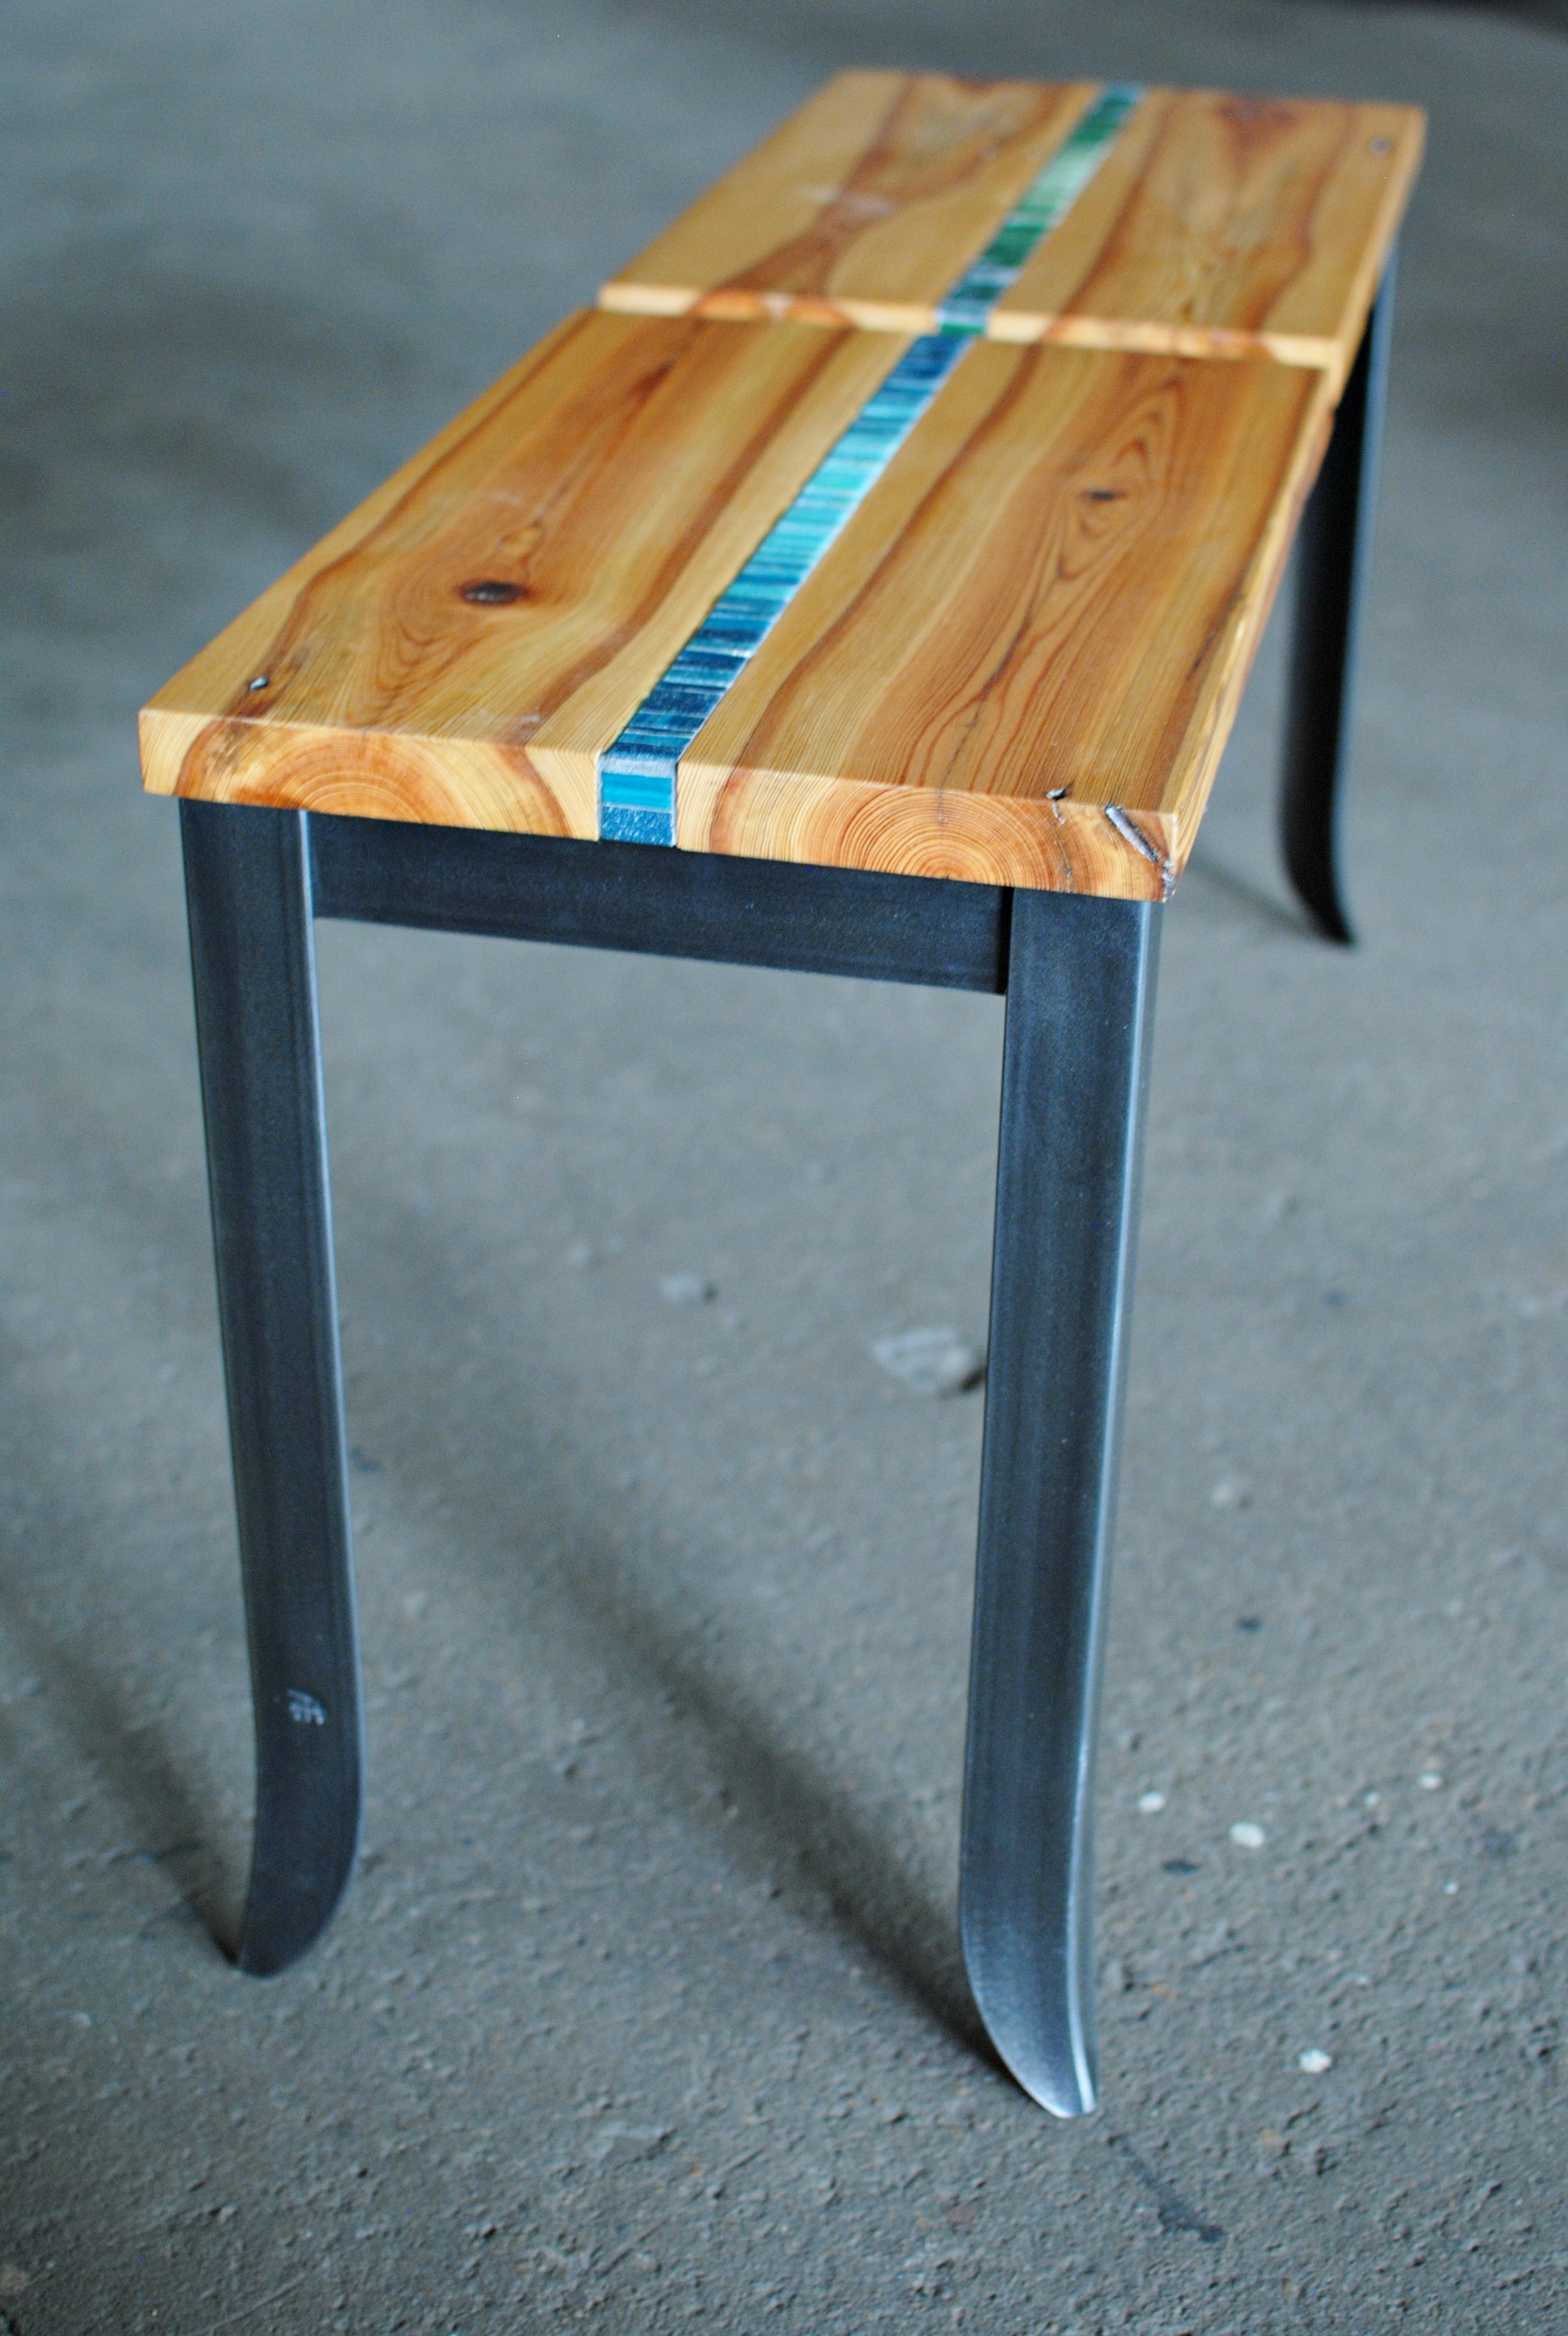 Interior bench with mosaic inlay in wood seats and forged steel legs